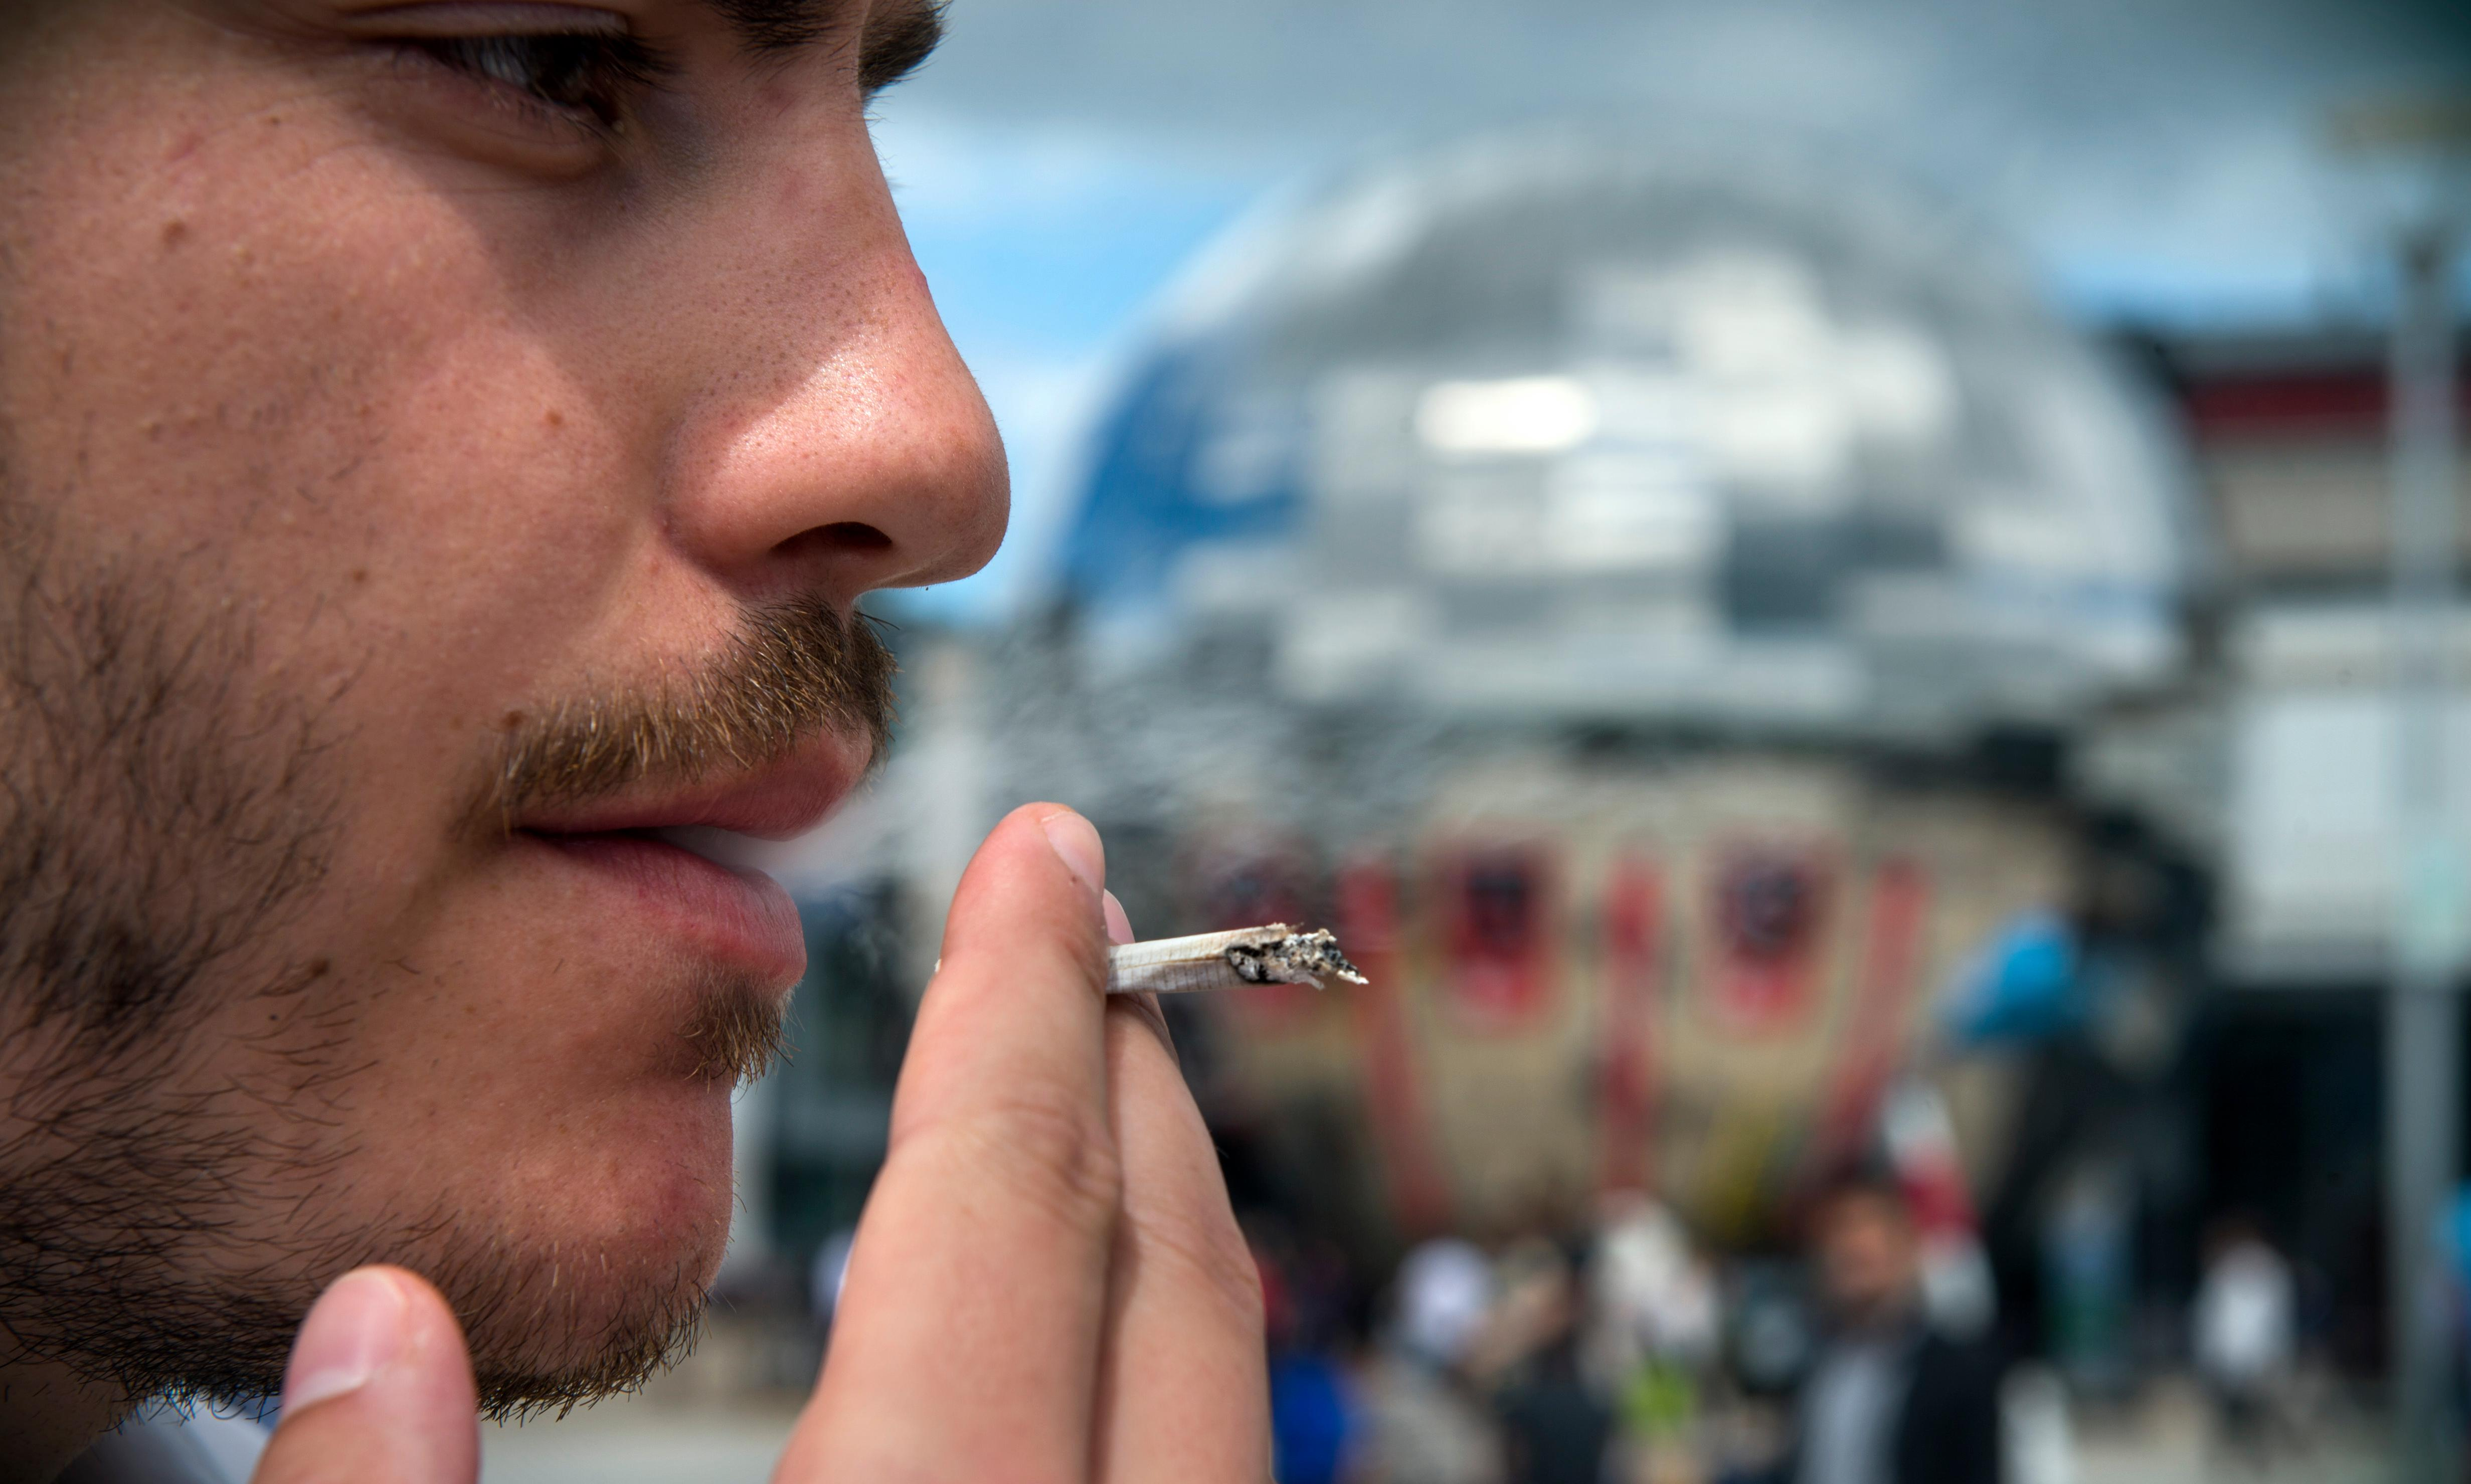 Is Britain ready for outdoor smoking bans?